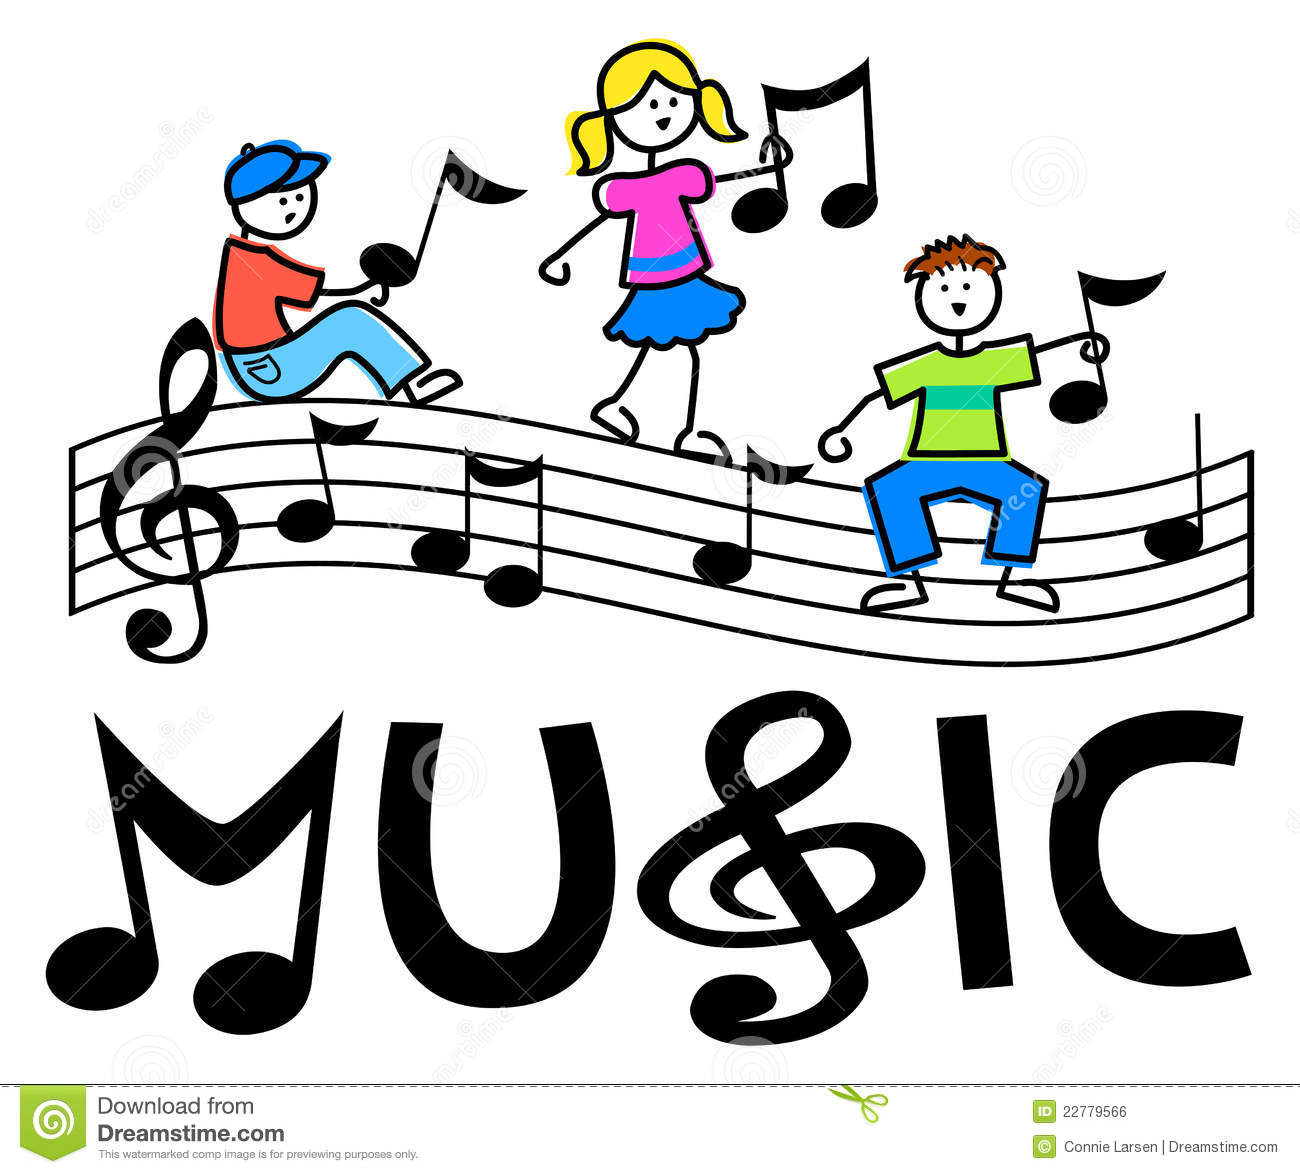 musical note images free download best musical note birthday clip art images free birthday clip art images for may birthdays